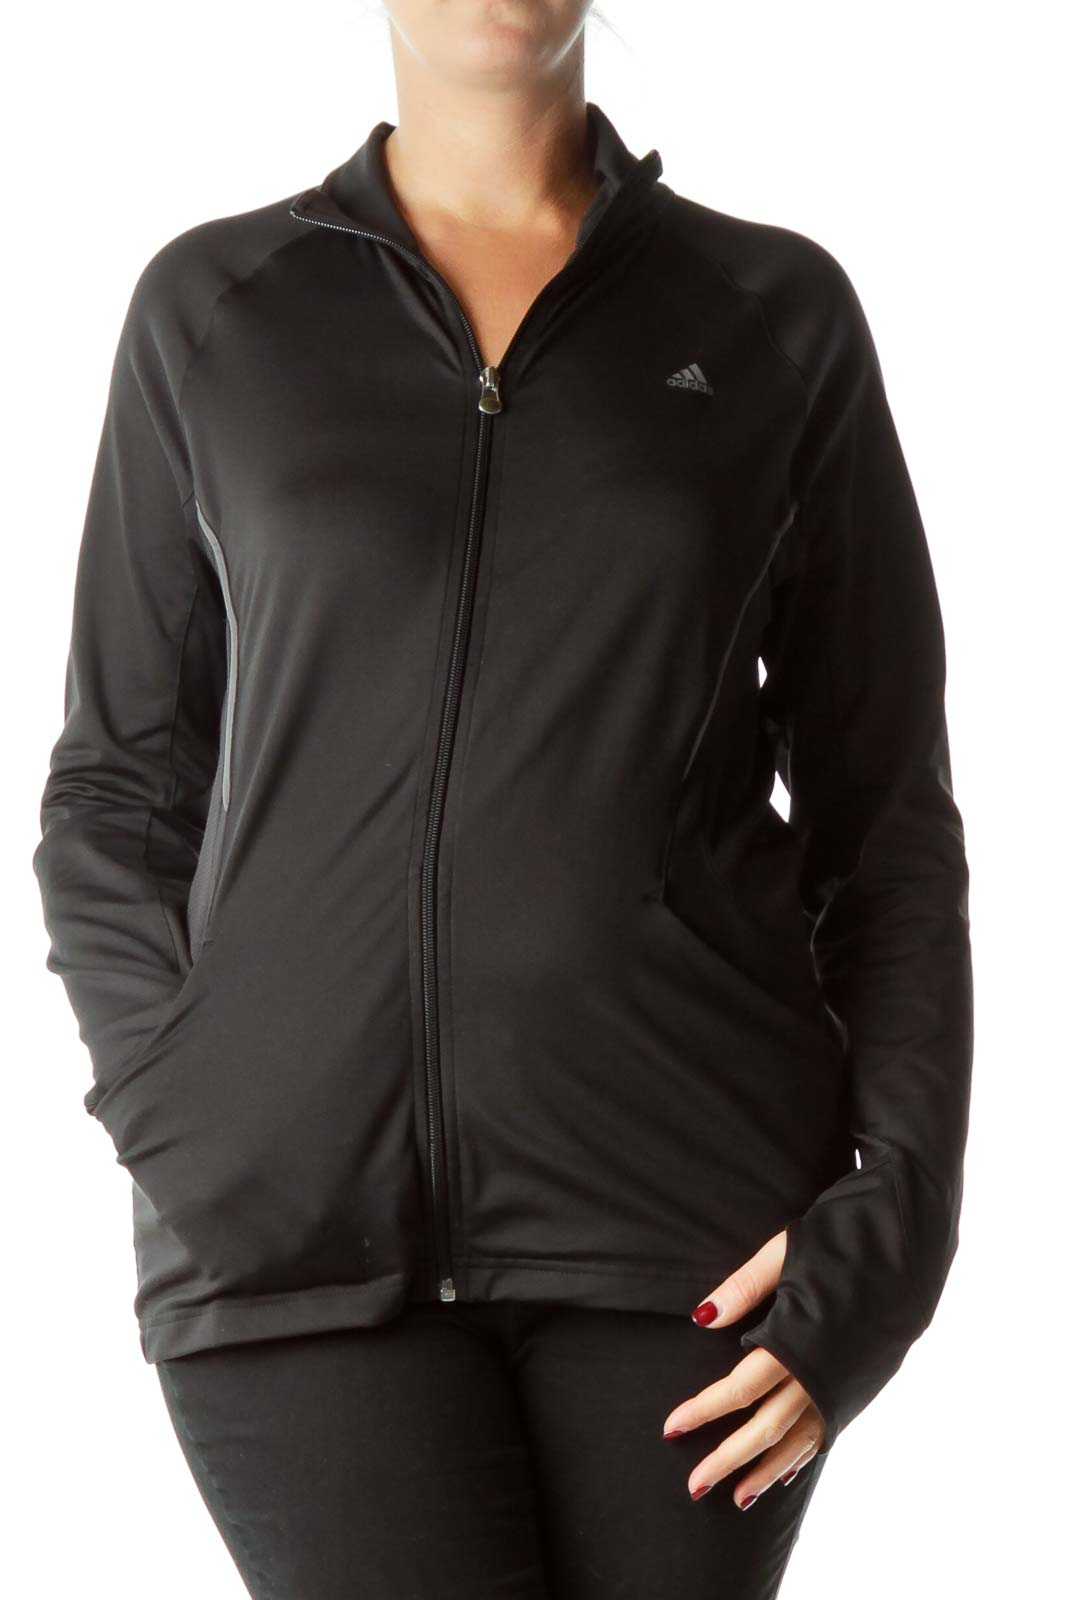 Black Full-Zip Climalite Active Top